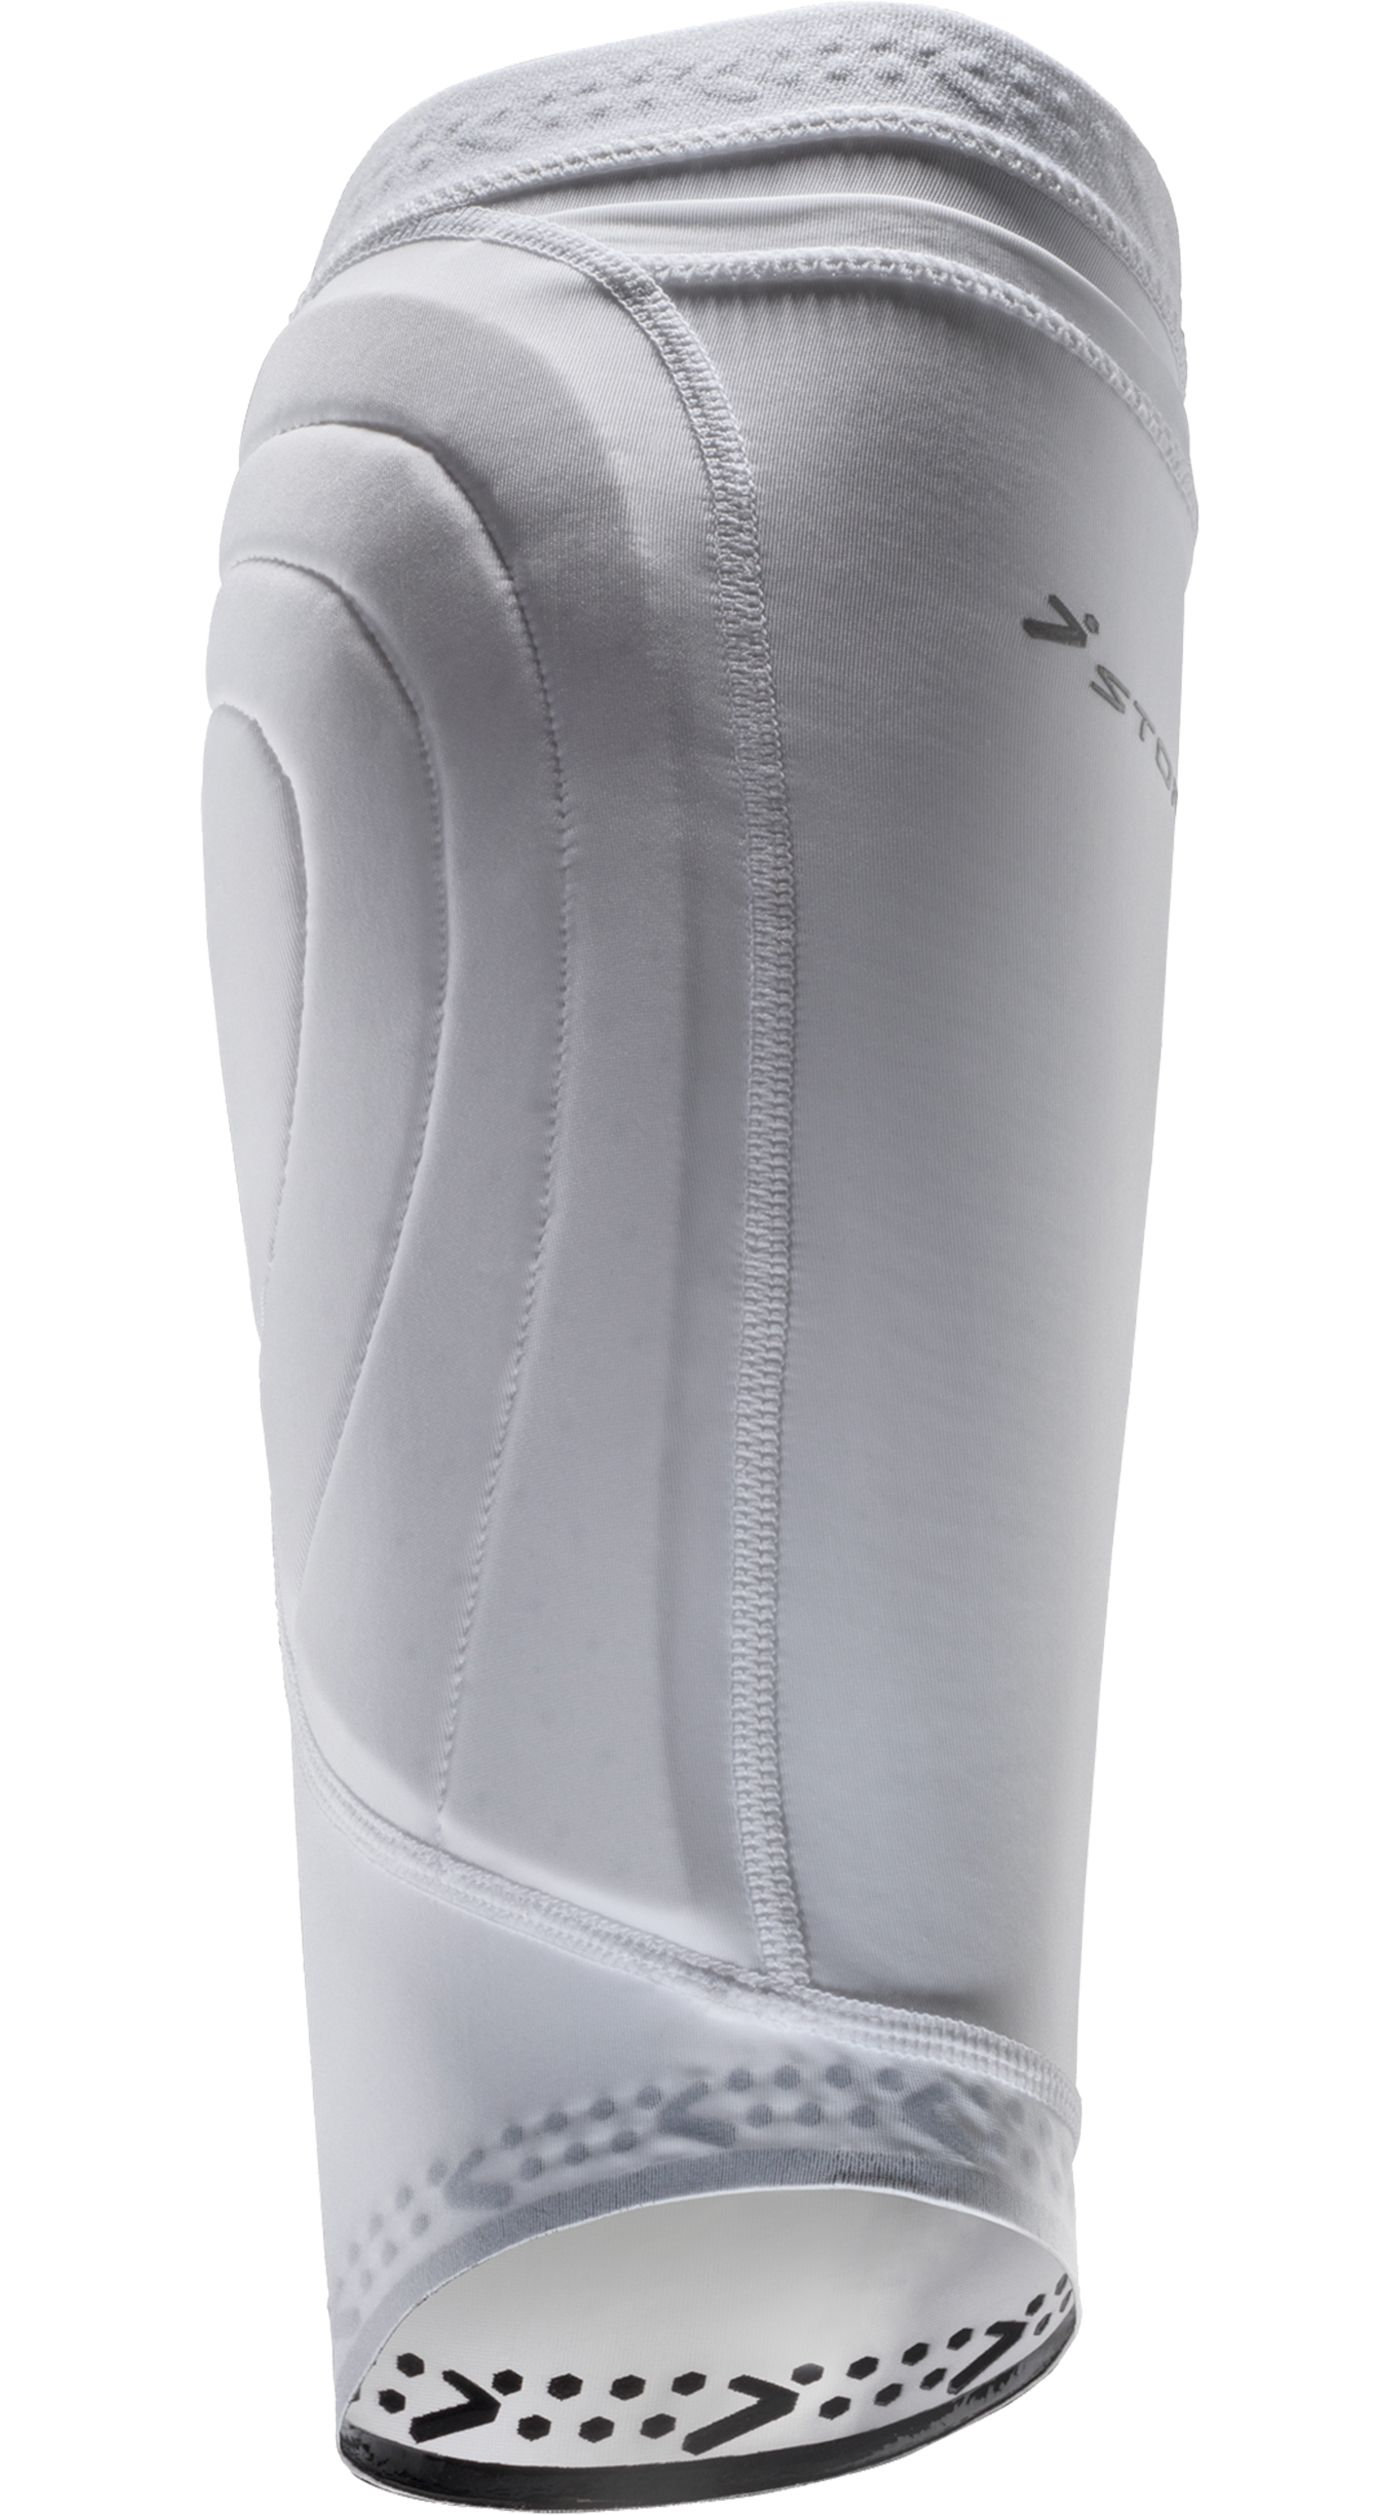 Storelli Bodyshield Leg Sleeves